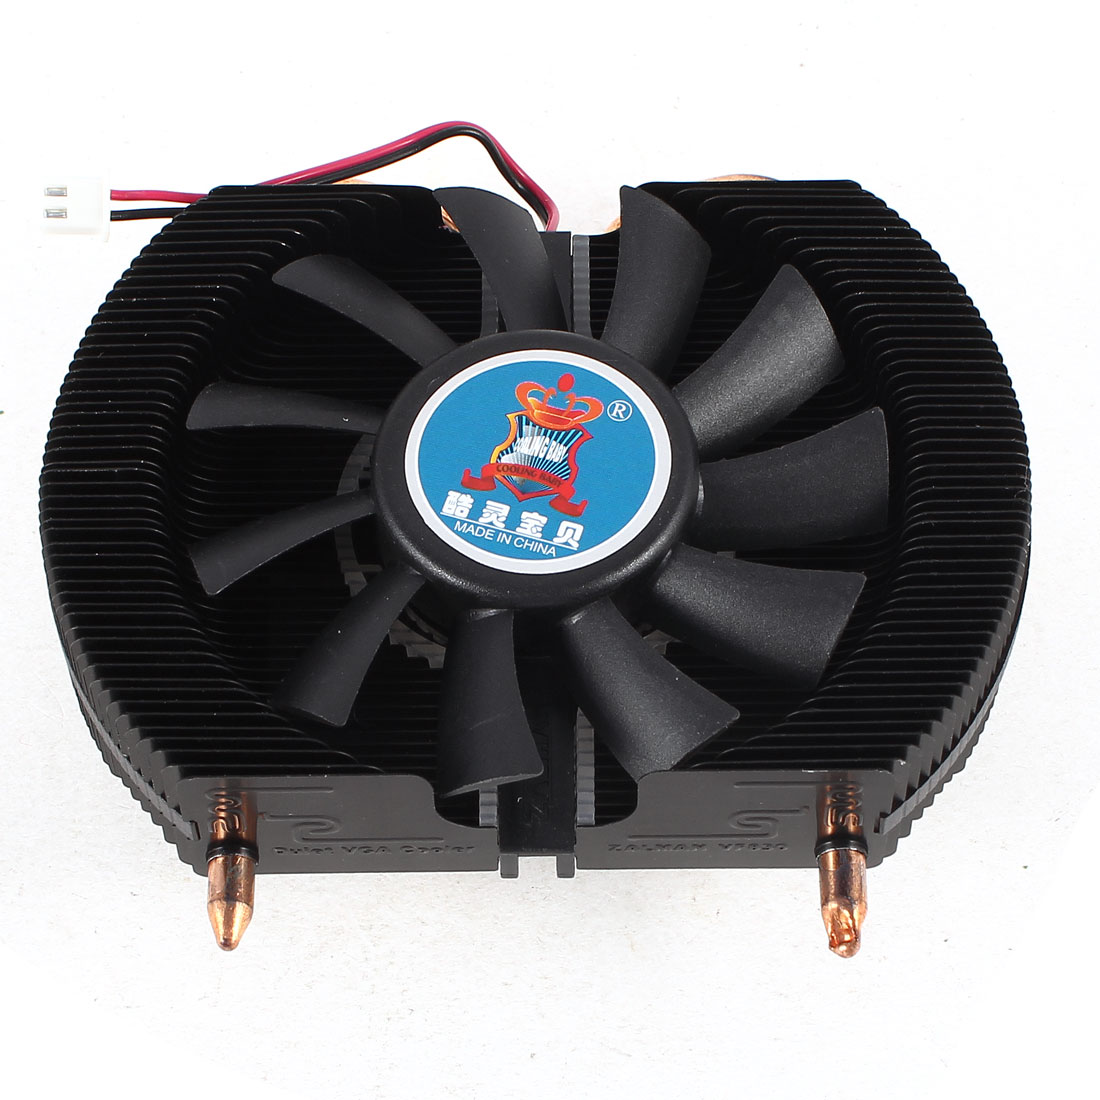 Ball Bearing 75mm 2 Terminals Connector PC VGA Video Card Cooling Cooler Fan